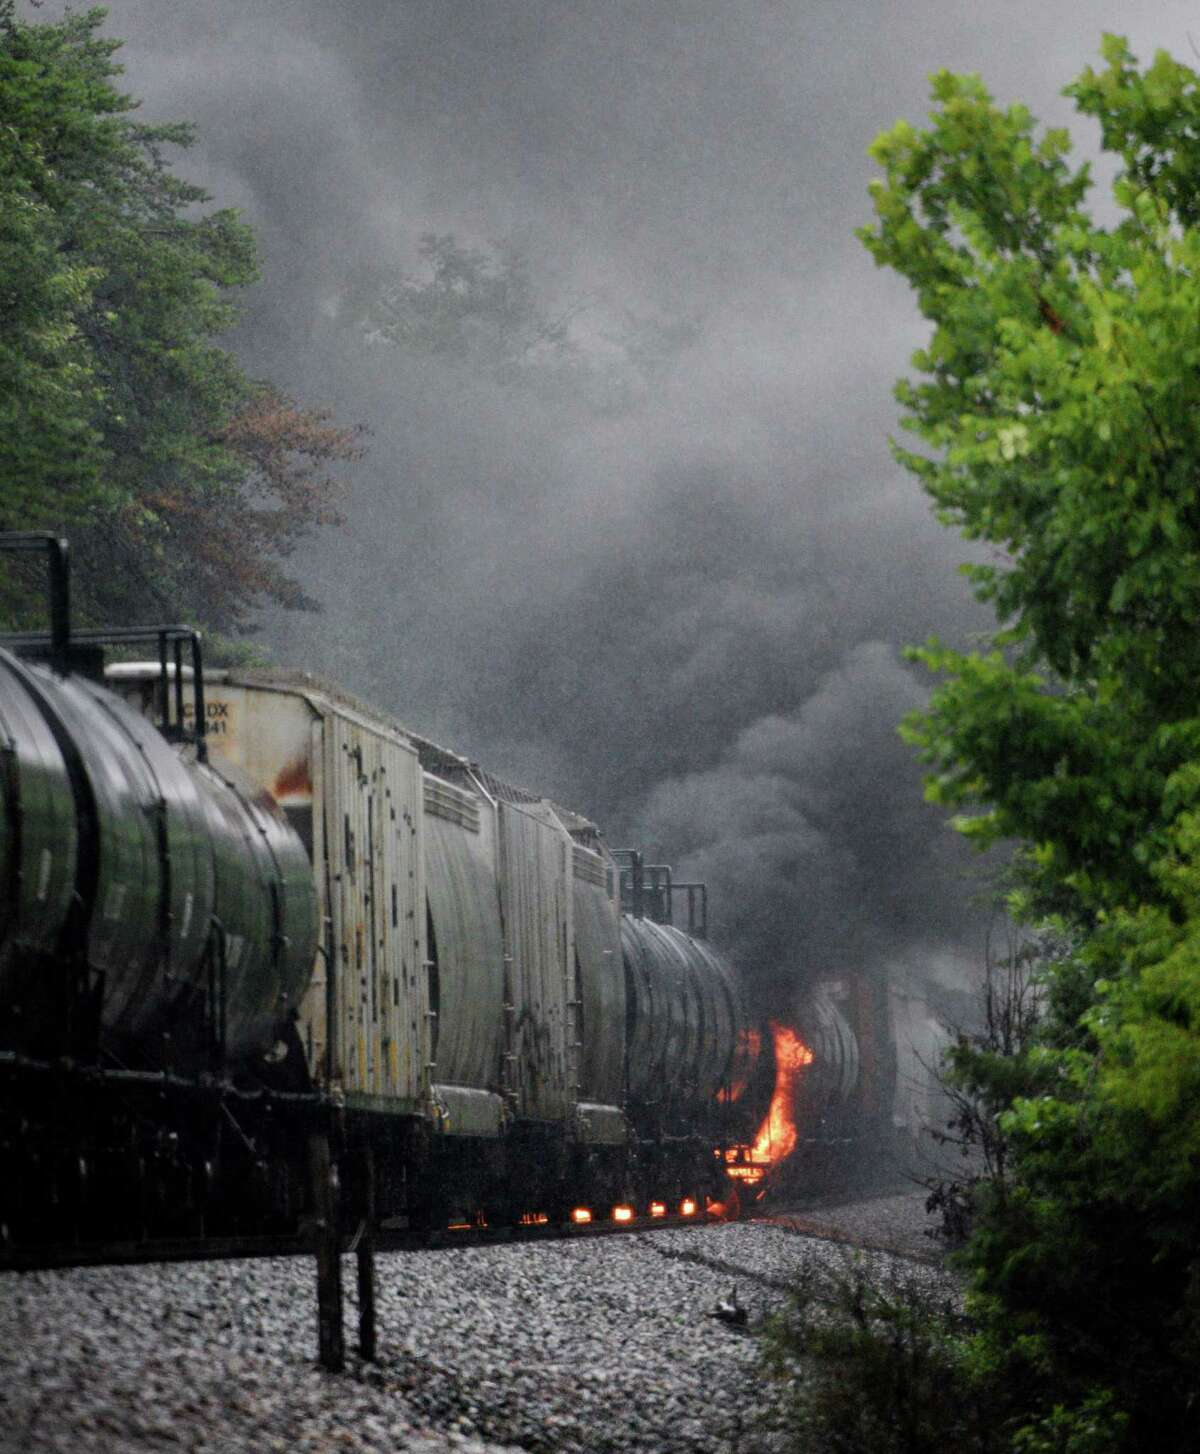 Smoke rises from a CSX train following the derailment of a train car, Thursday, July 2, 2015, in Maryville, Tenn. The derailment of the car, carrying a flammable and toxic substance, caused the evacuation of thousands in the surrounding area. (Michael Patrick/Knoxville News Sentinel via AP)